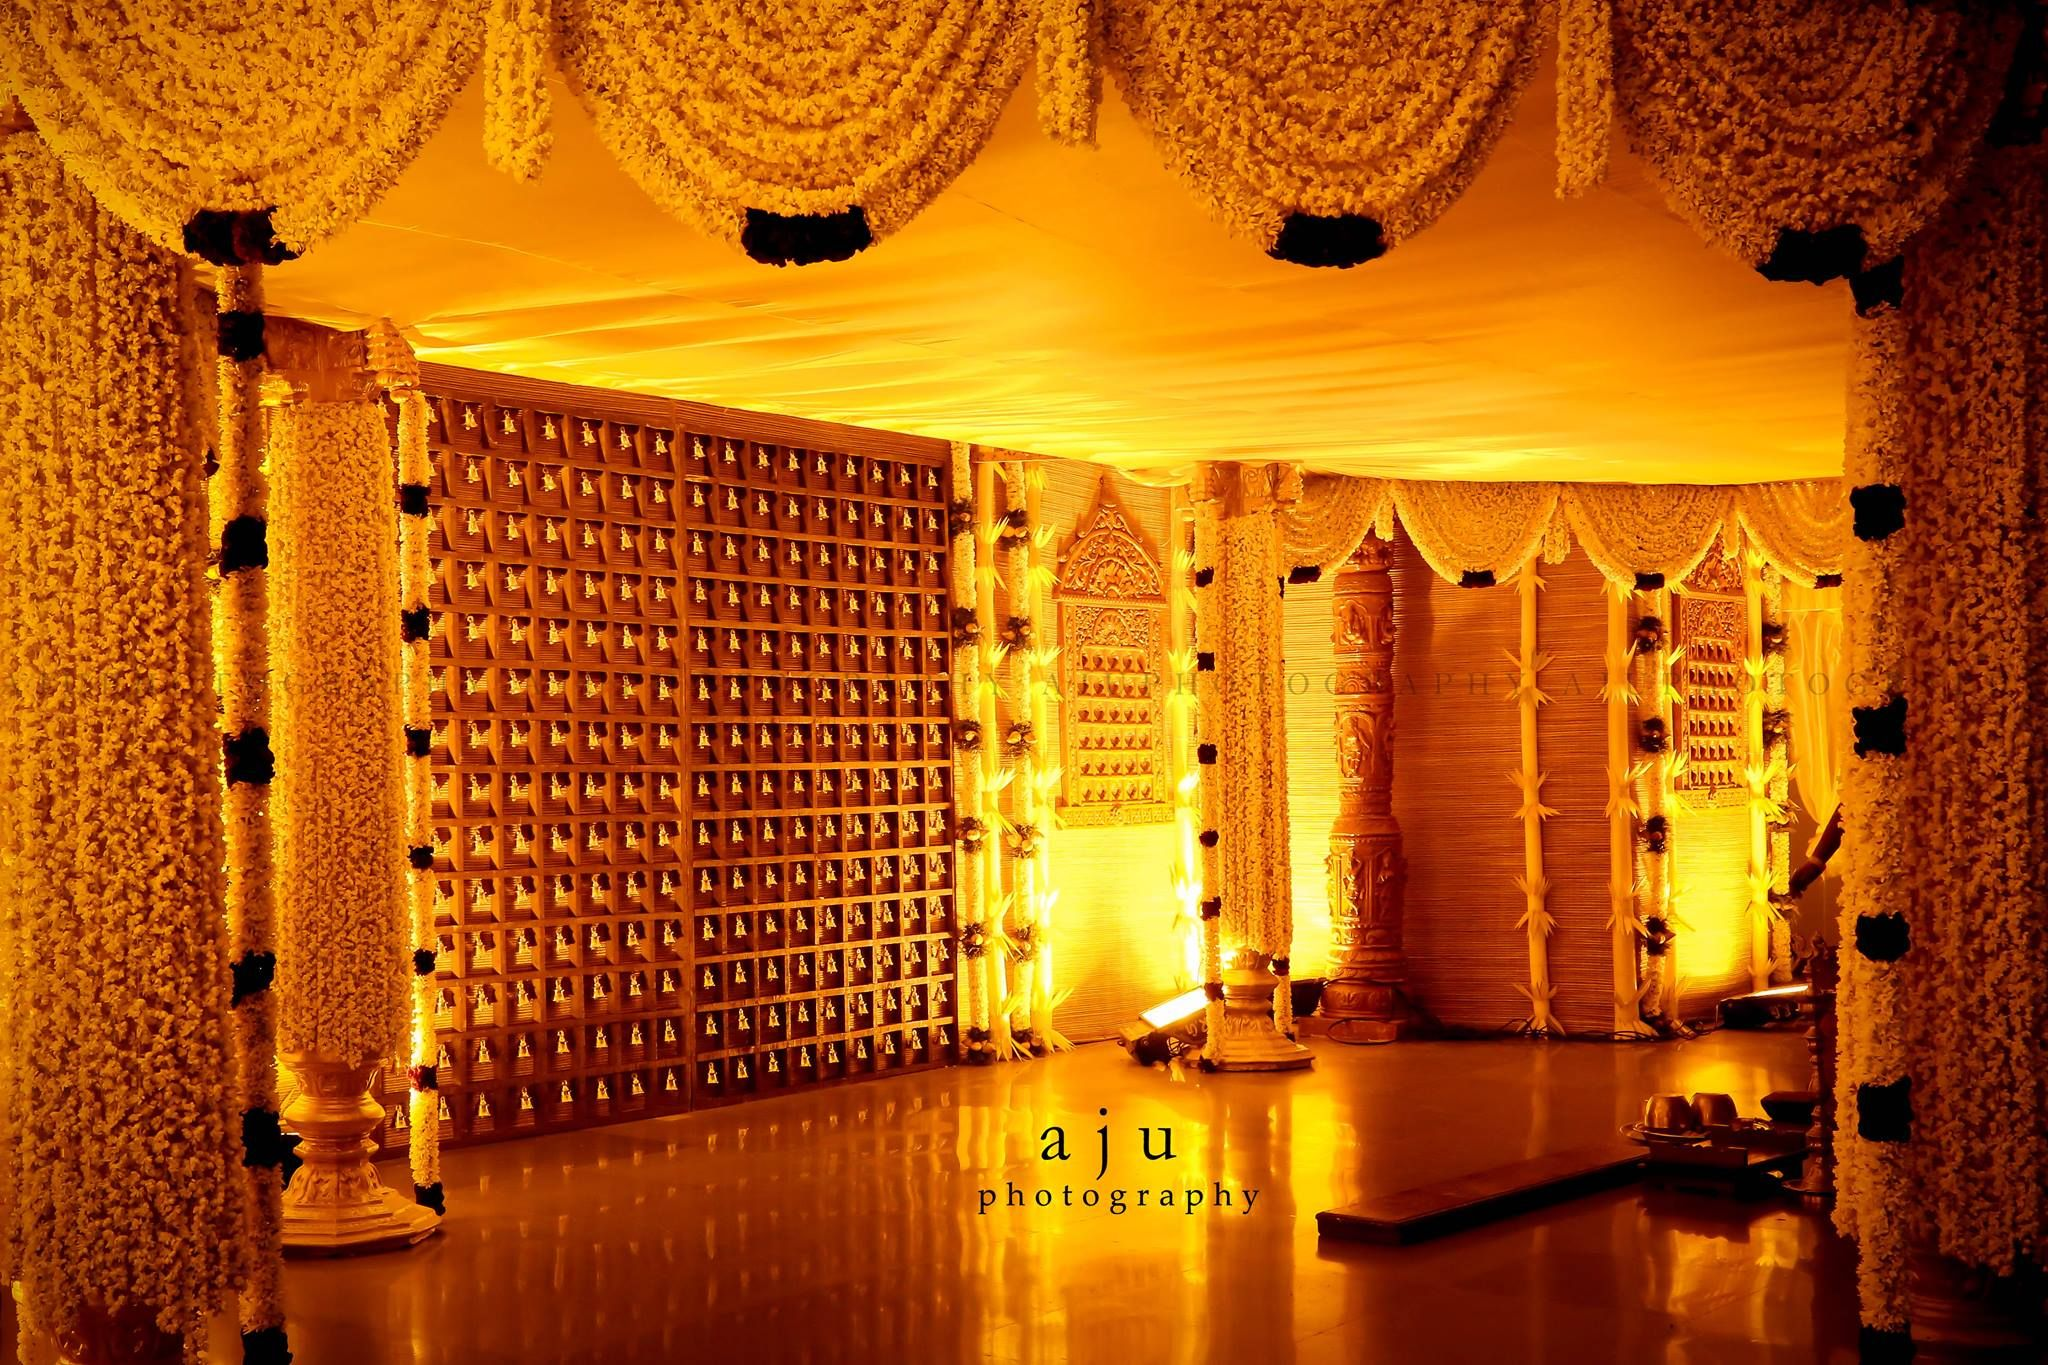 Aju photography indian wedding decorators pinterest for Background decoration for indian wedding